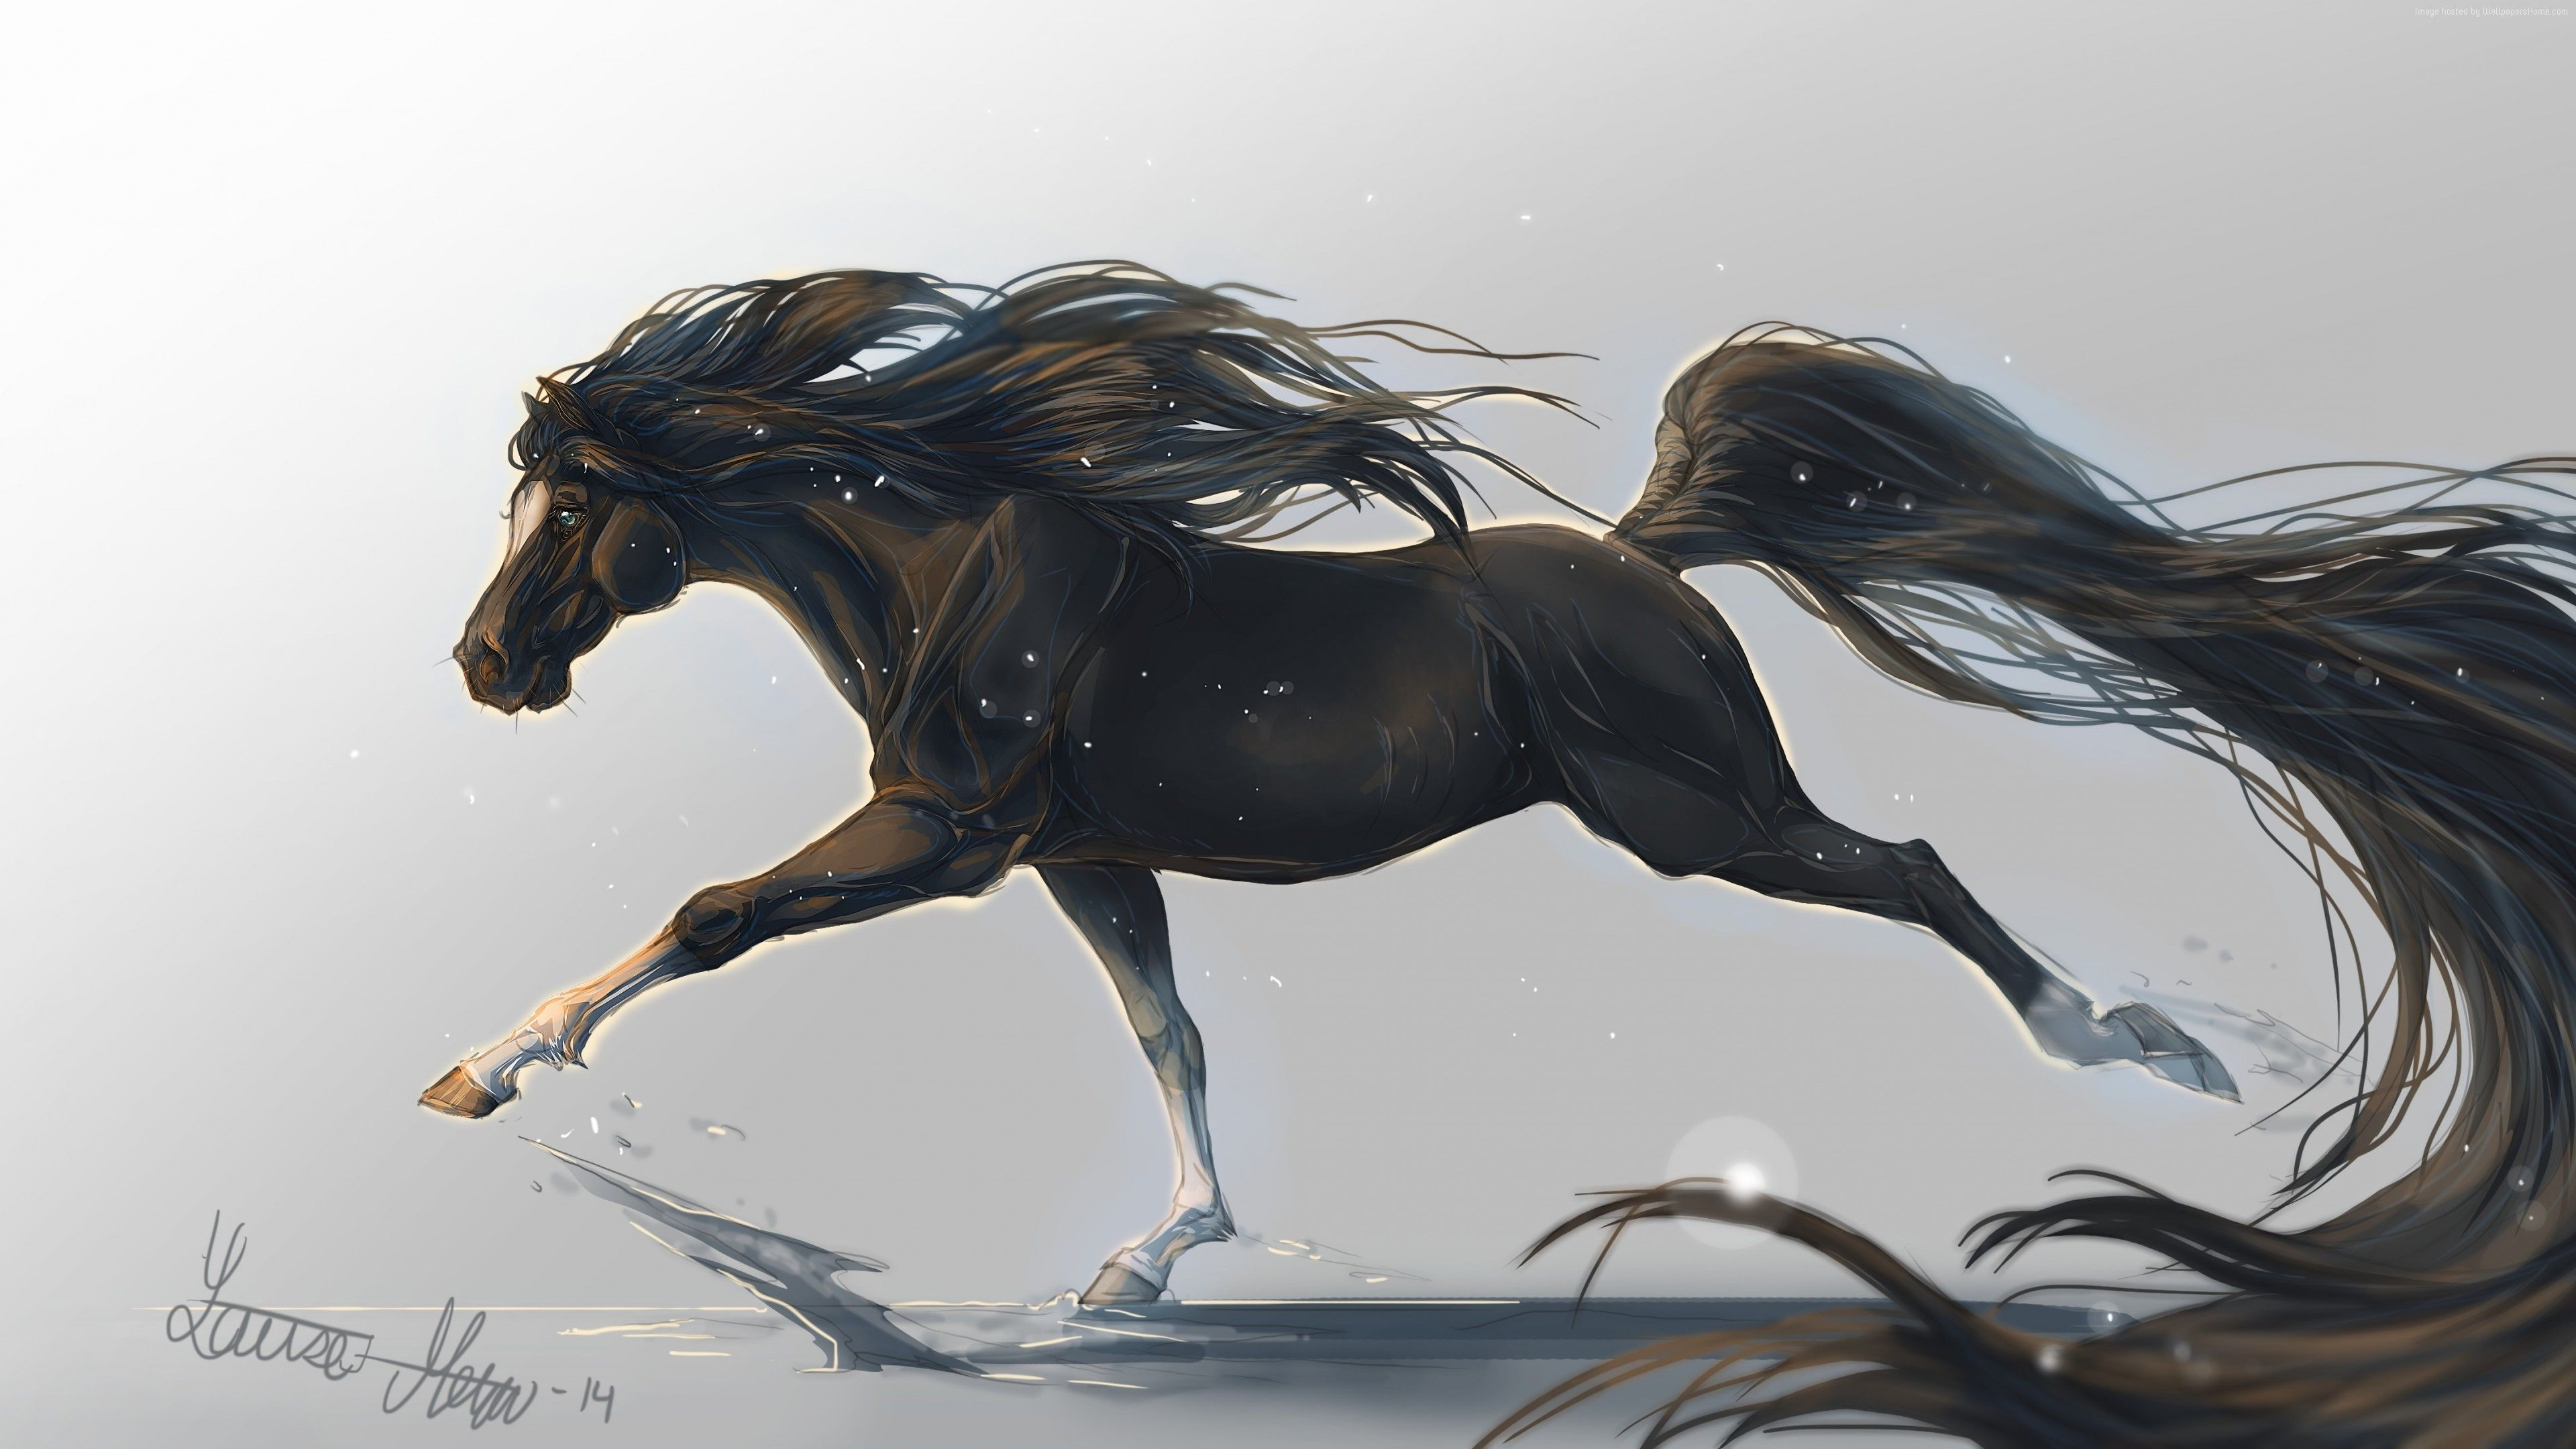 Wallpaper Horse Hooves 5k 4k Wallpaper Mane Galloping Black White Background Art Animals Horse Wallpaper Horses Fantasy Horses